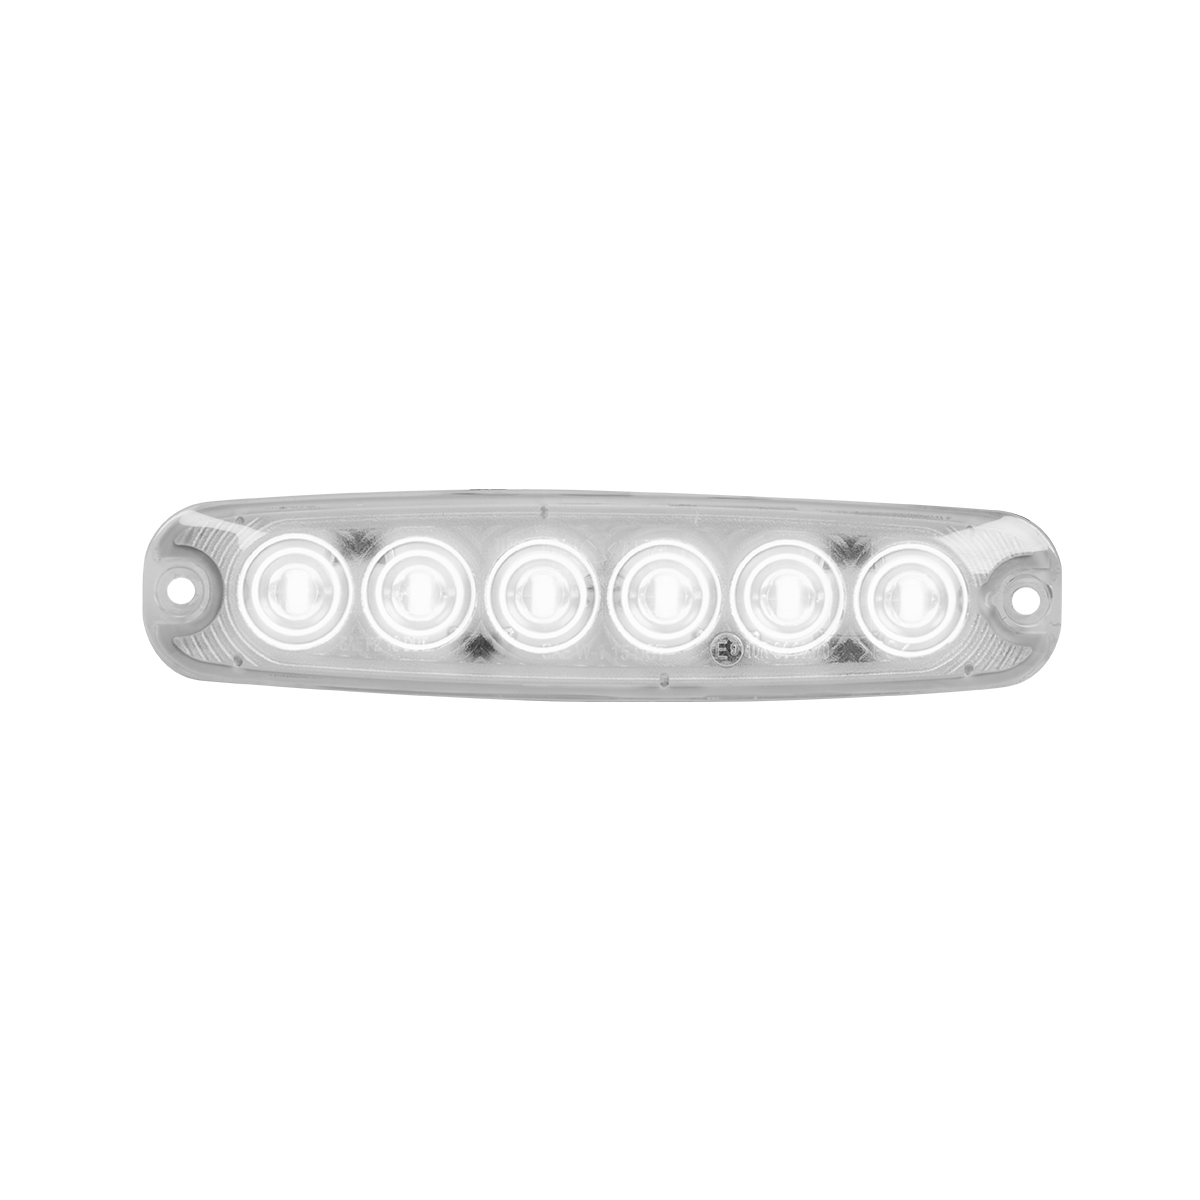 "5 ⅛"" Ultra Thin LED Light - White/Clear"